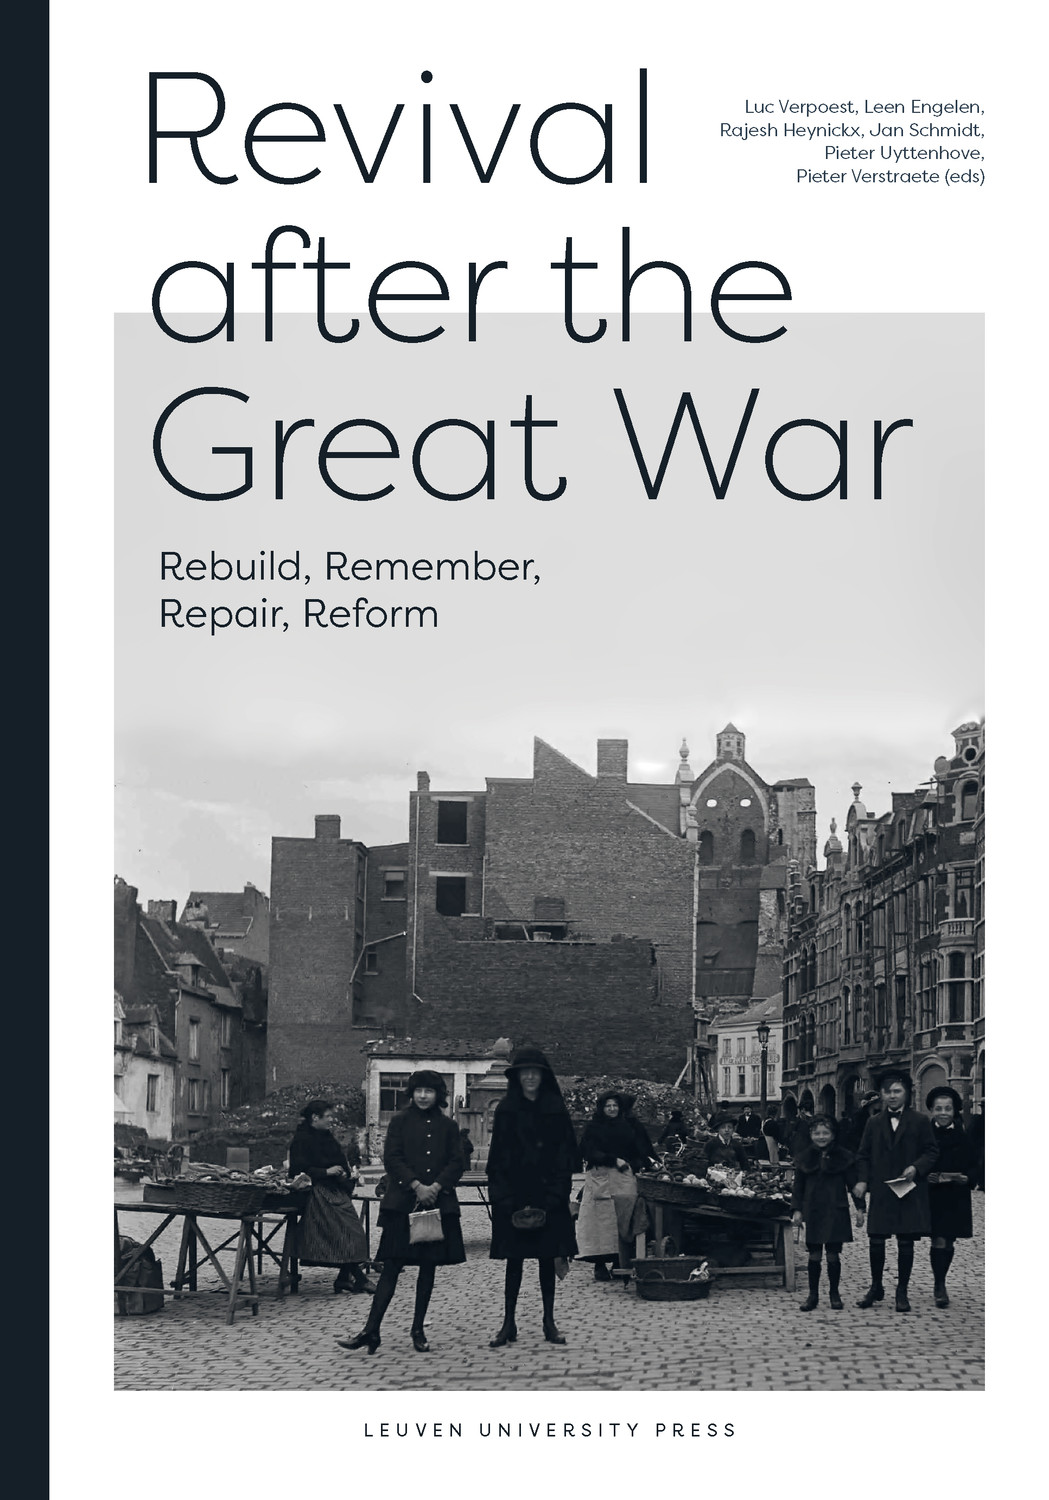 Revival After the Great War